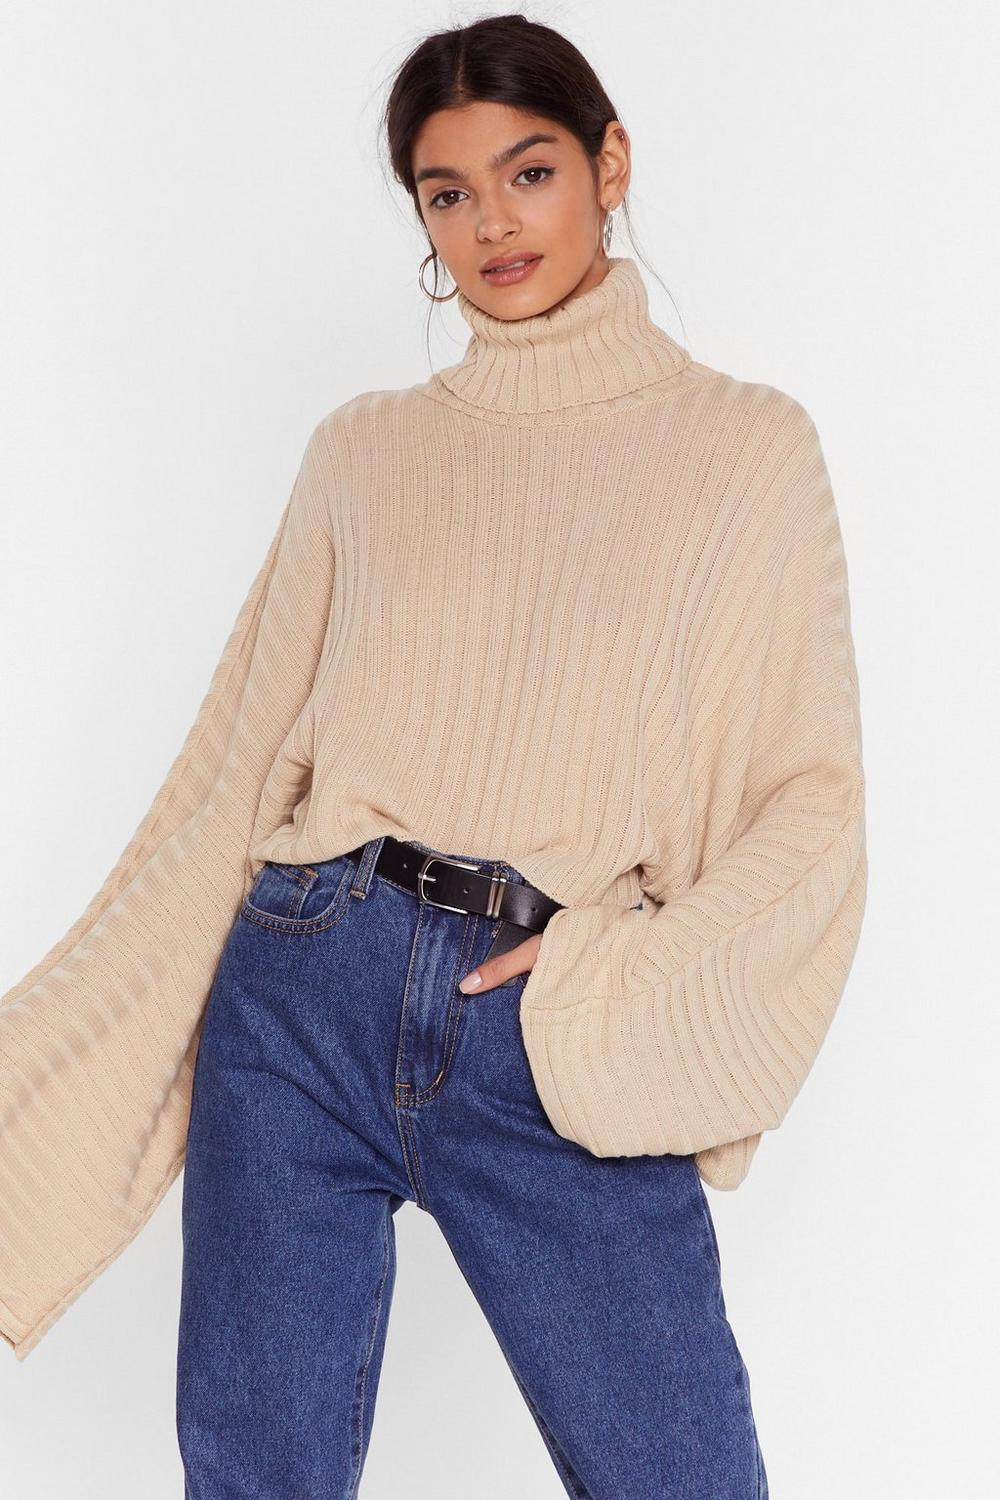 b5f305f711 Call Knit a Day Oversized Sweater